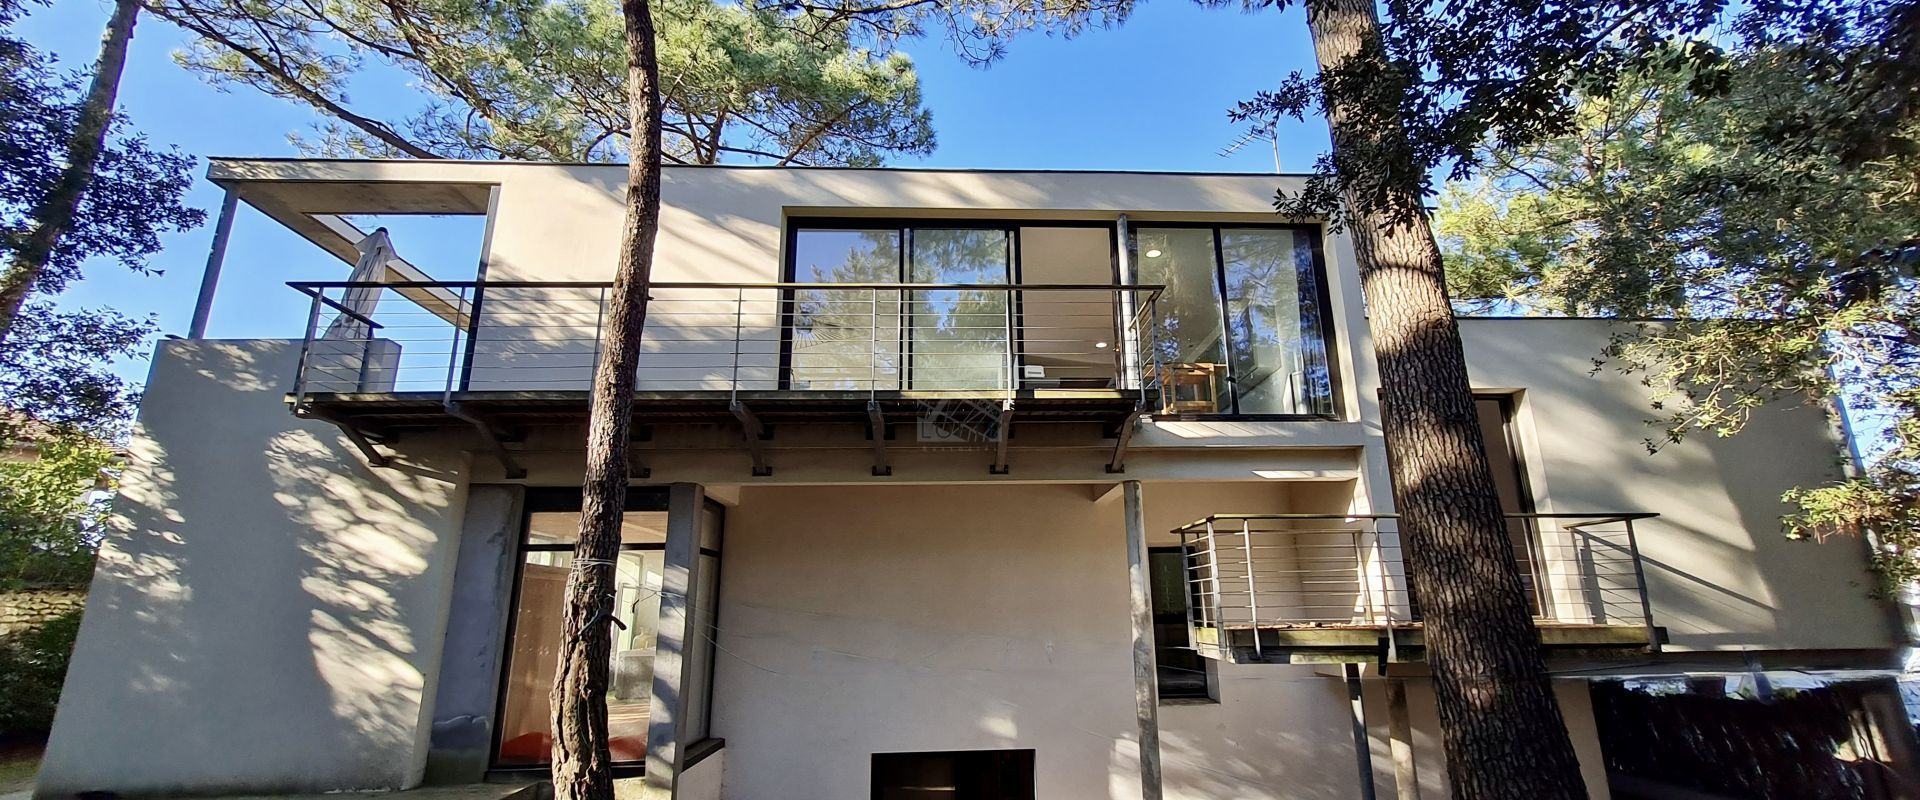 New - contemporary villa sea view perched in the trees Royan